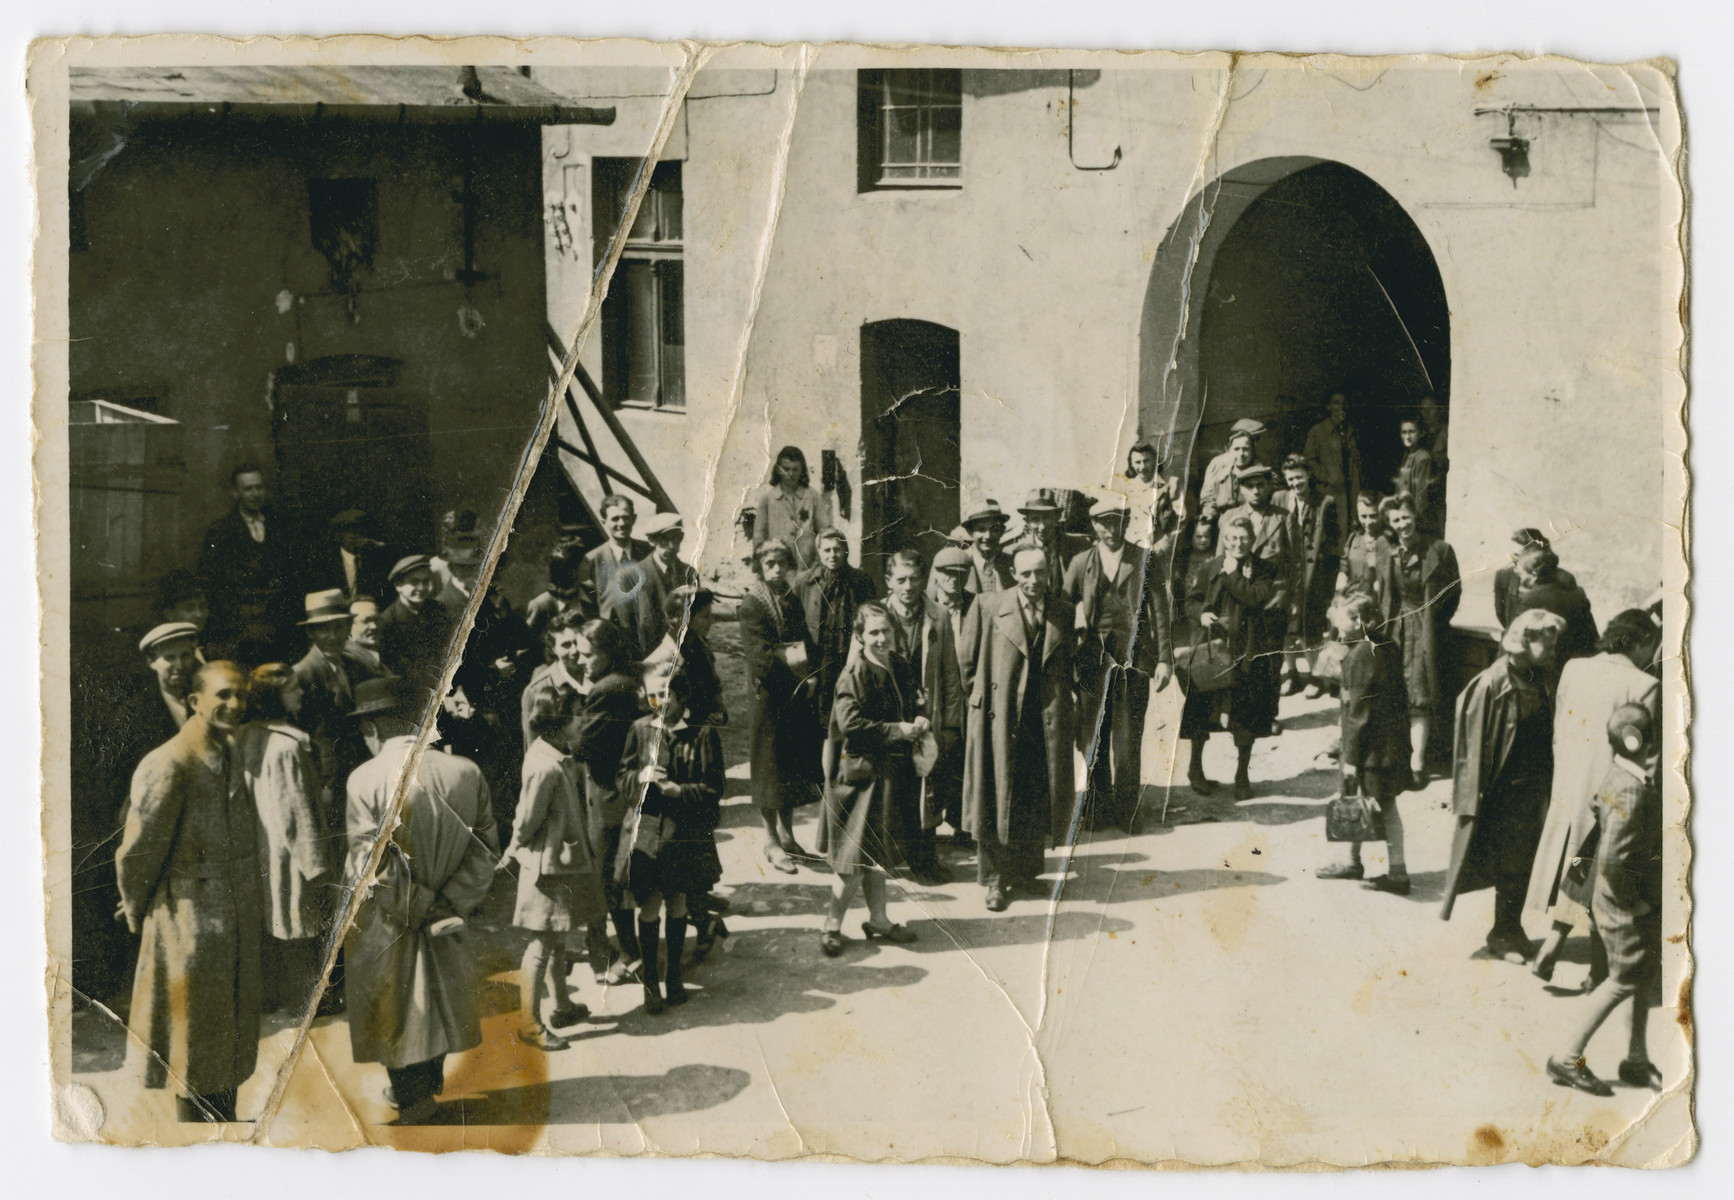 A group of men, women and children gather in a courtward in Bedzin.  Wolf Fiszer is pictured in the front left.  Hannah Gilbert Fiszer is pictured second from the right.  Shye was his first wife and later perished in Auschwitz.